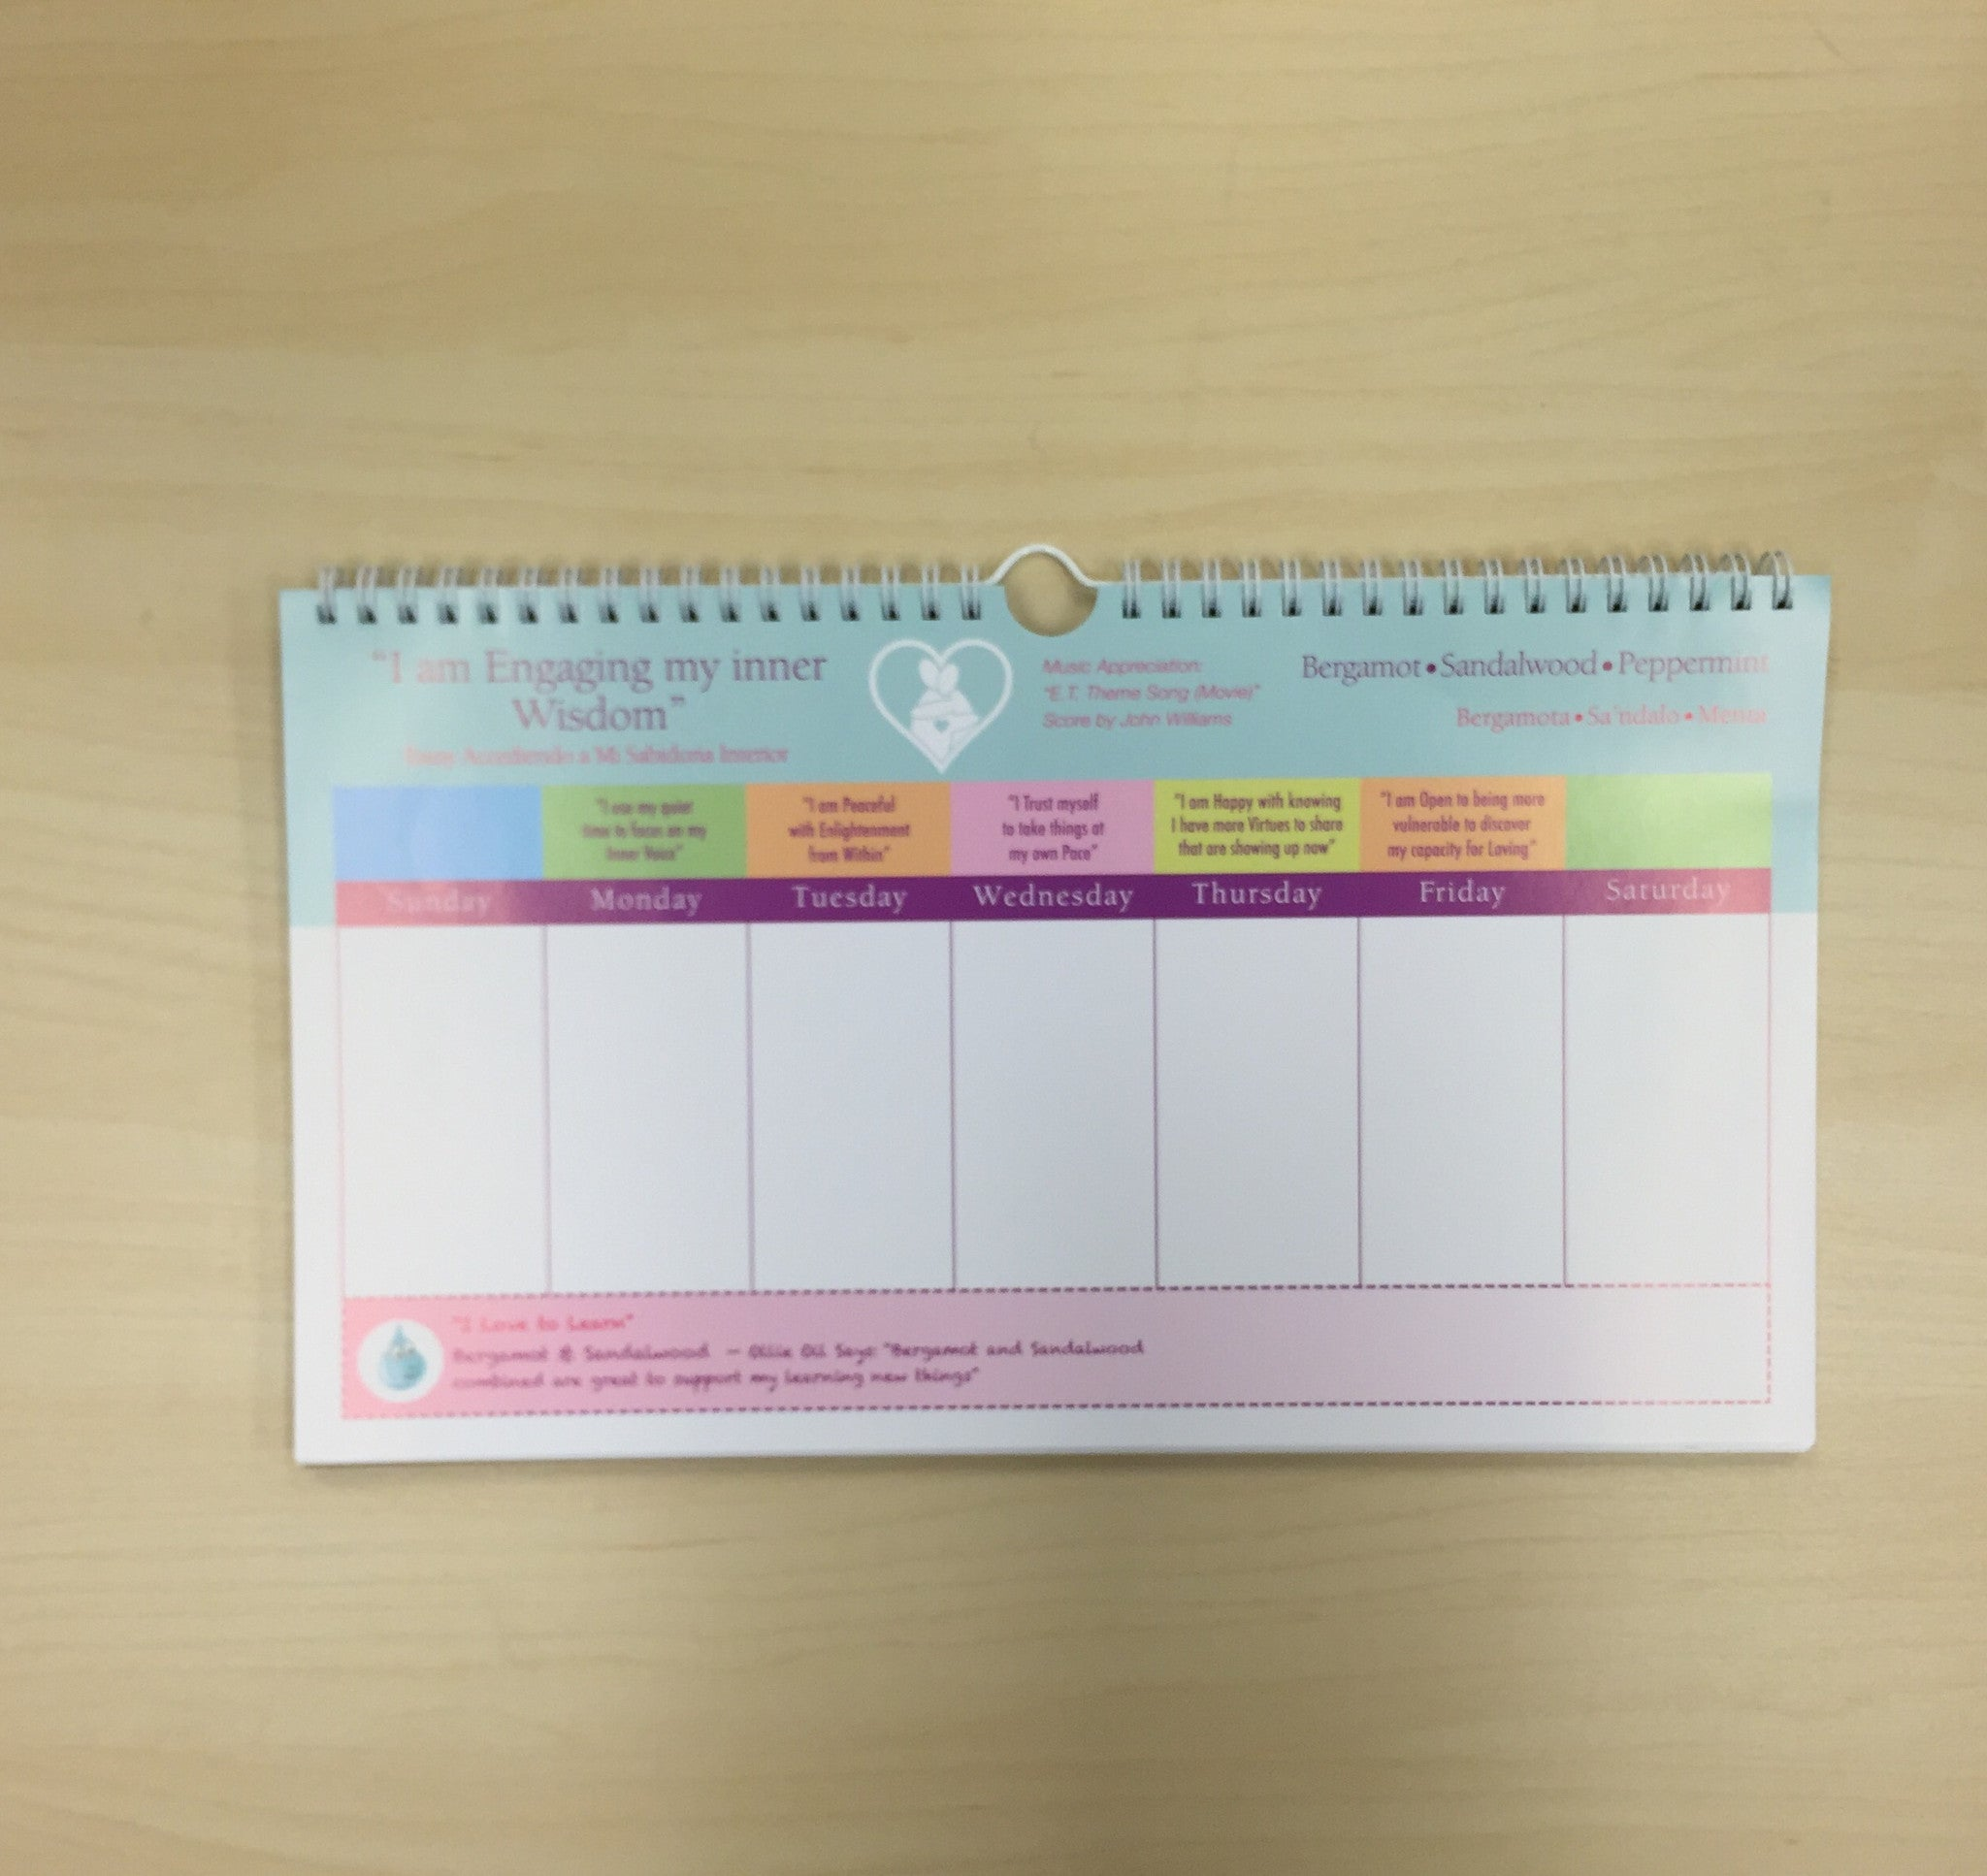 Personal Peaceful Growth Calendar